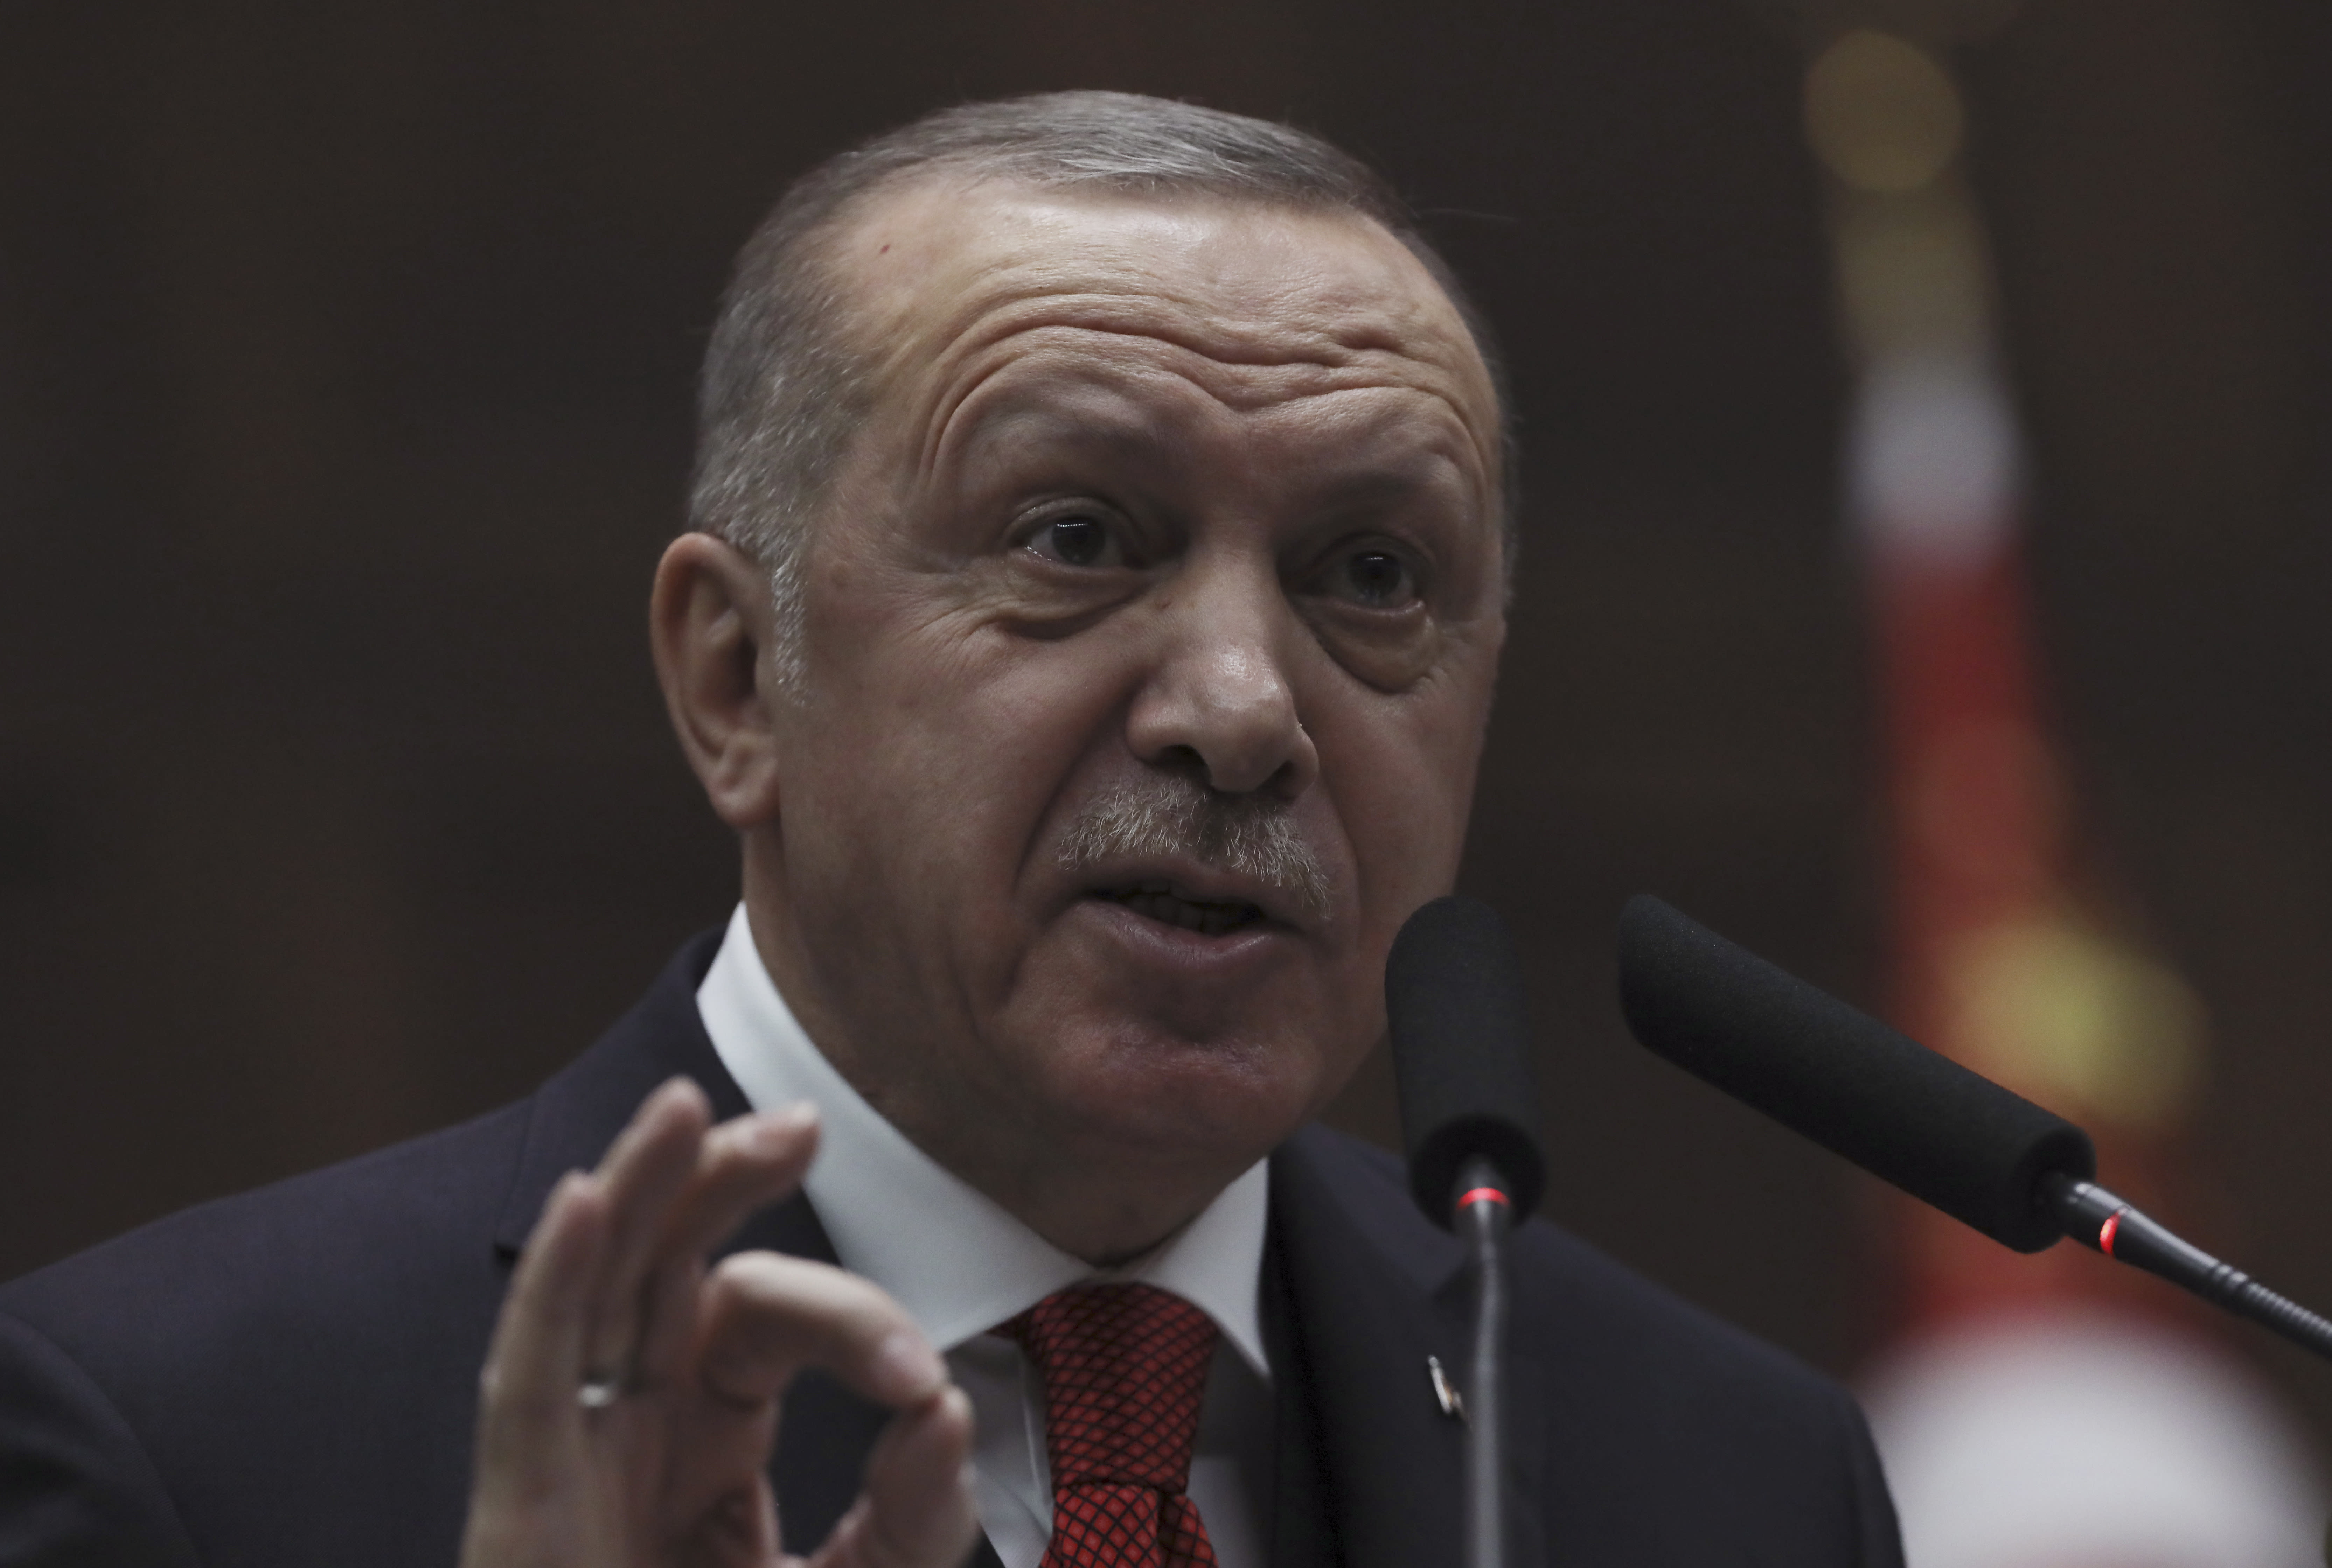 """Turkey's President Recep Tayyip Erdogan addresses his ruling party's legislators, in Ankara, Turkey, Tuesday, Jan. 14, 2020. Erdogan said Turkey would closely follow moves by the two sides in Libya and vowed to teach Khalifa Hifter, the head of the self-styled Libyan National Army, """"the lesson he deserves"""" if attacks on the Tripoli government continued.(AP Photo/Burhan Ozbilici)"""